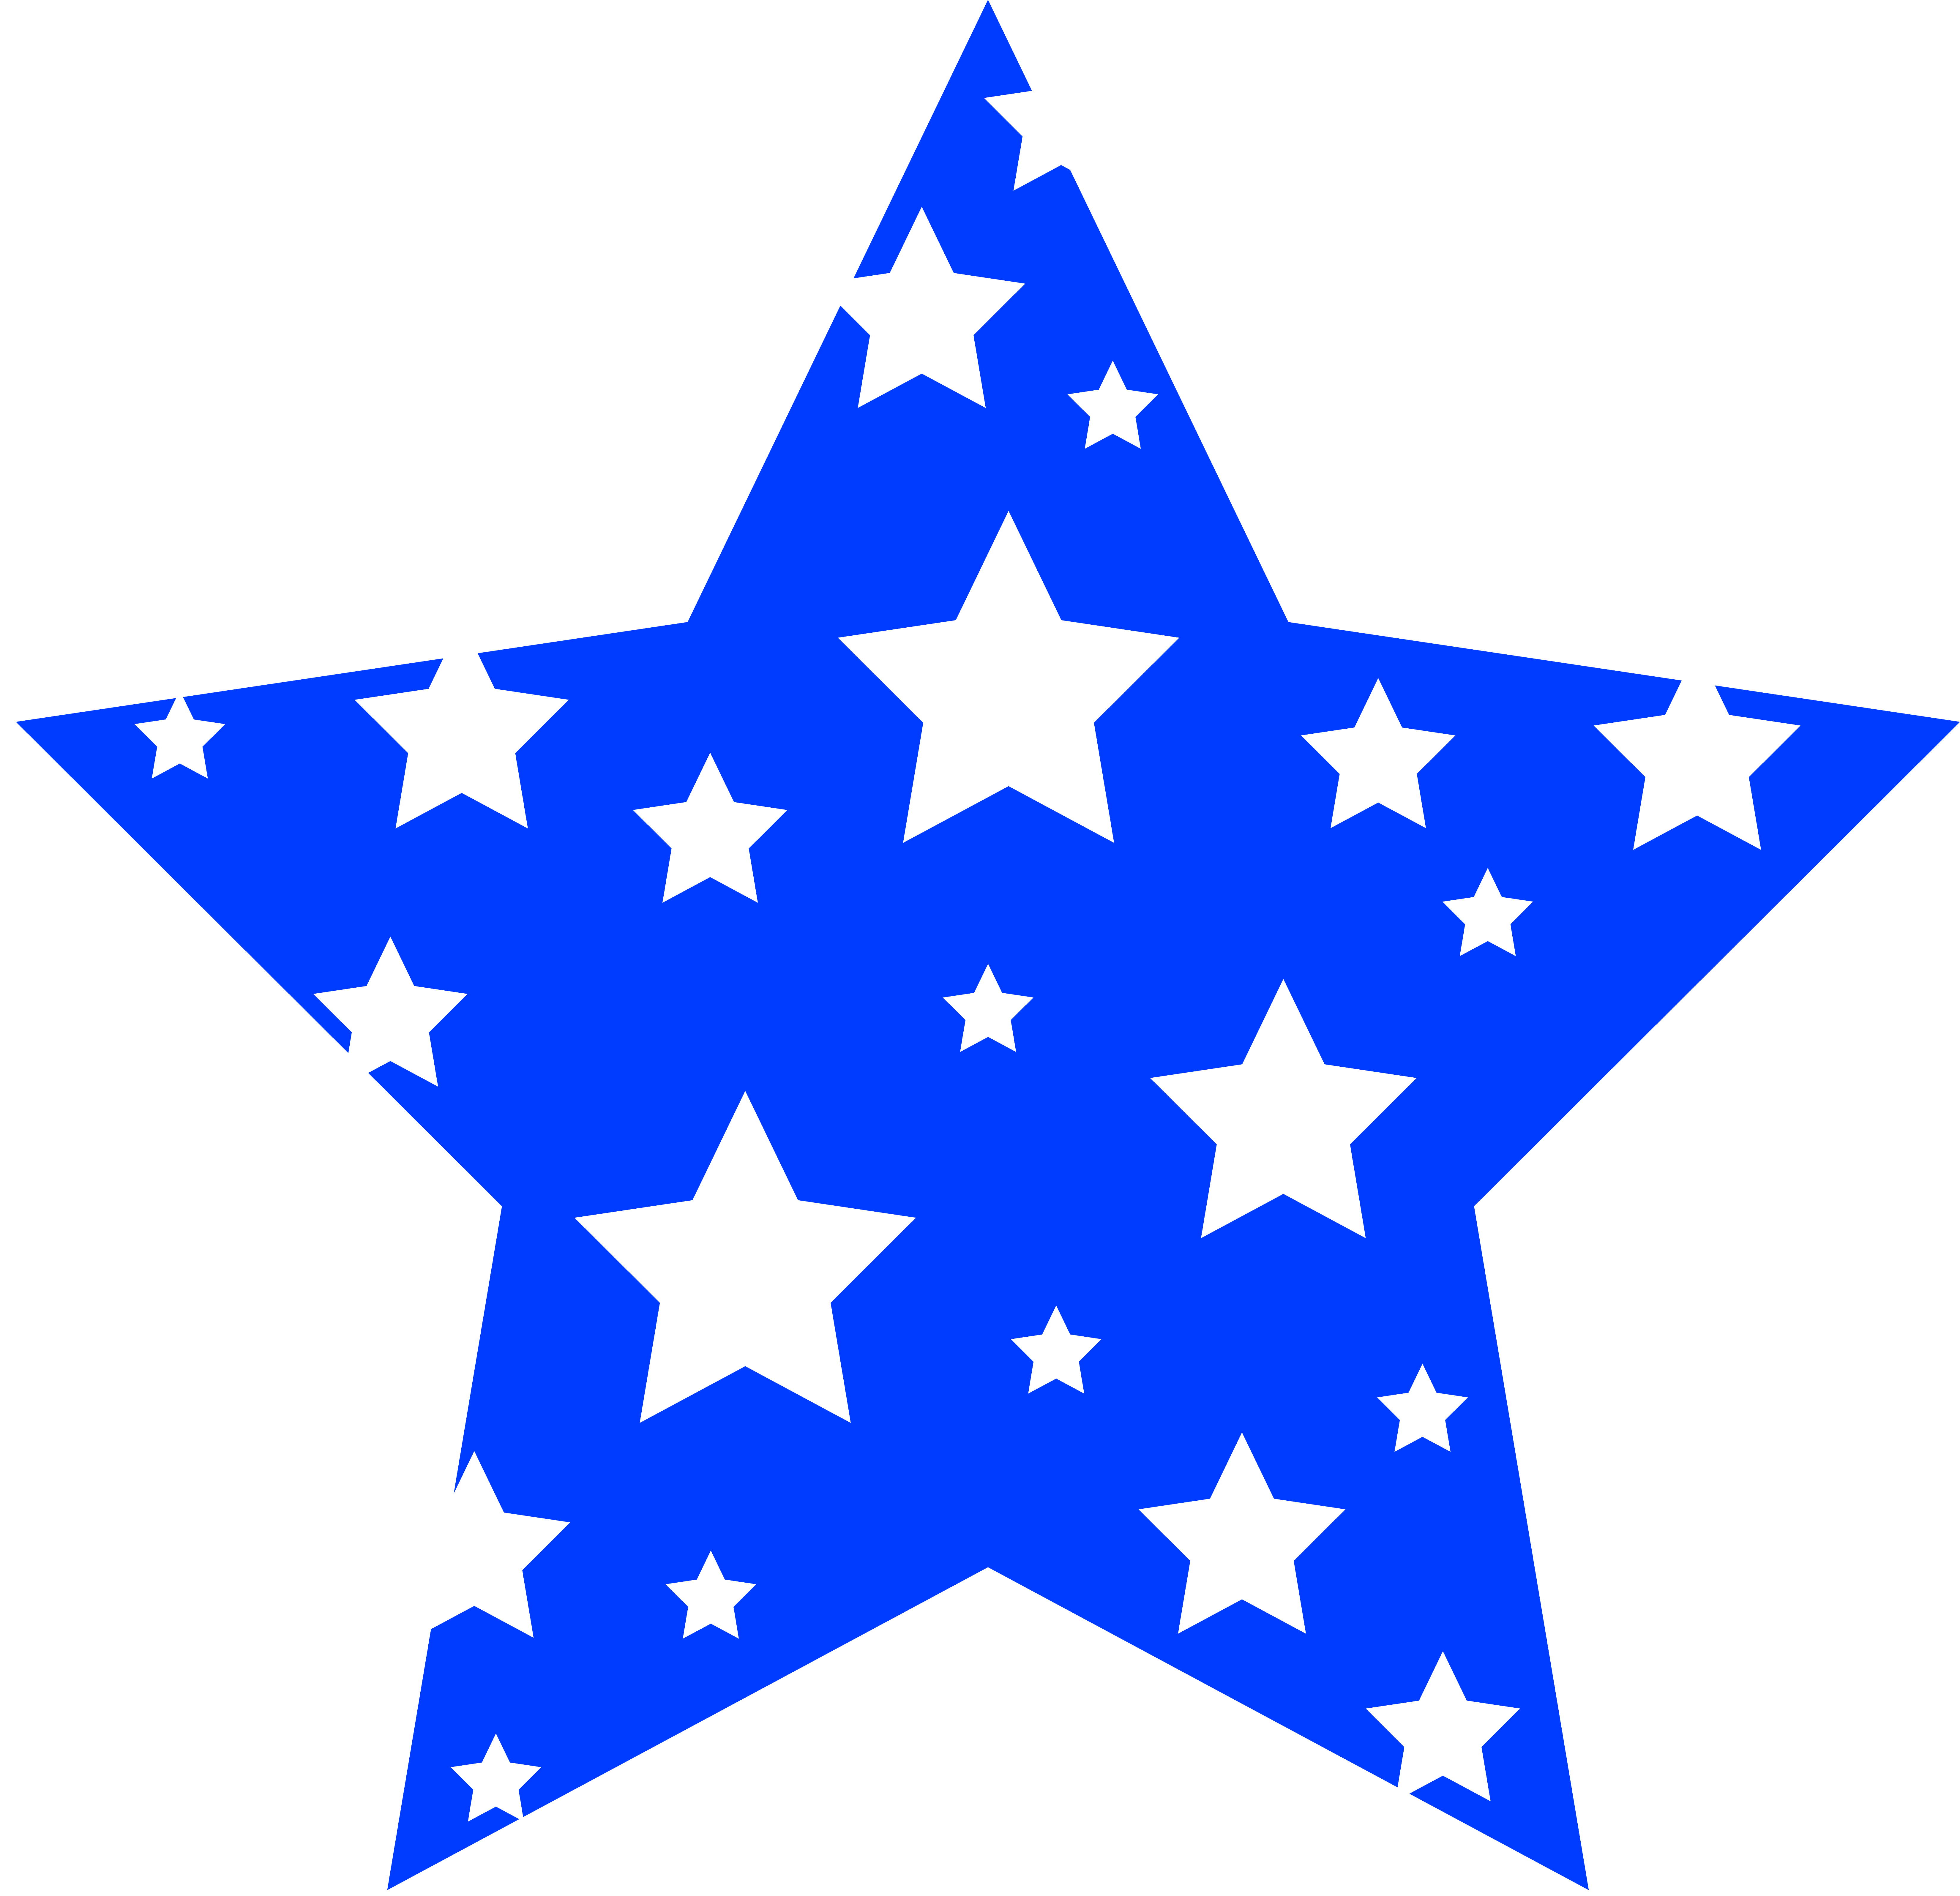 6598x6383 Blue And White Starry Star